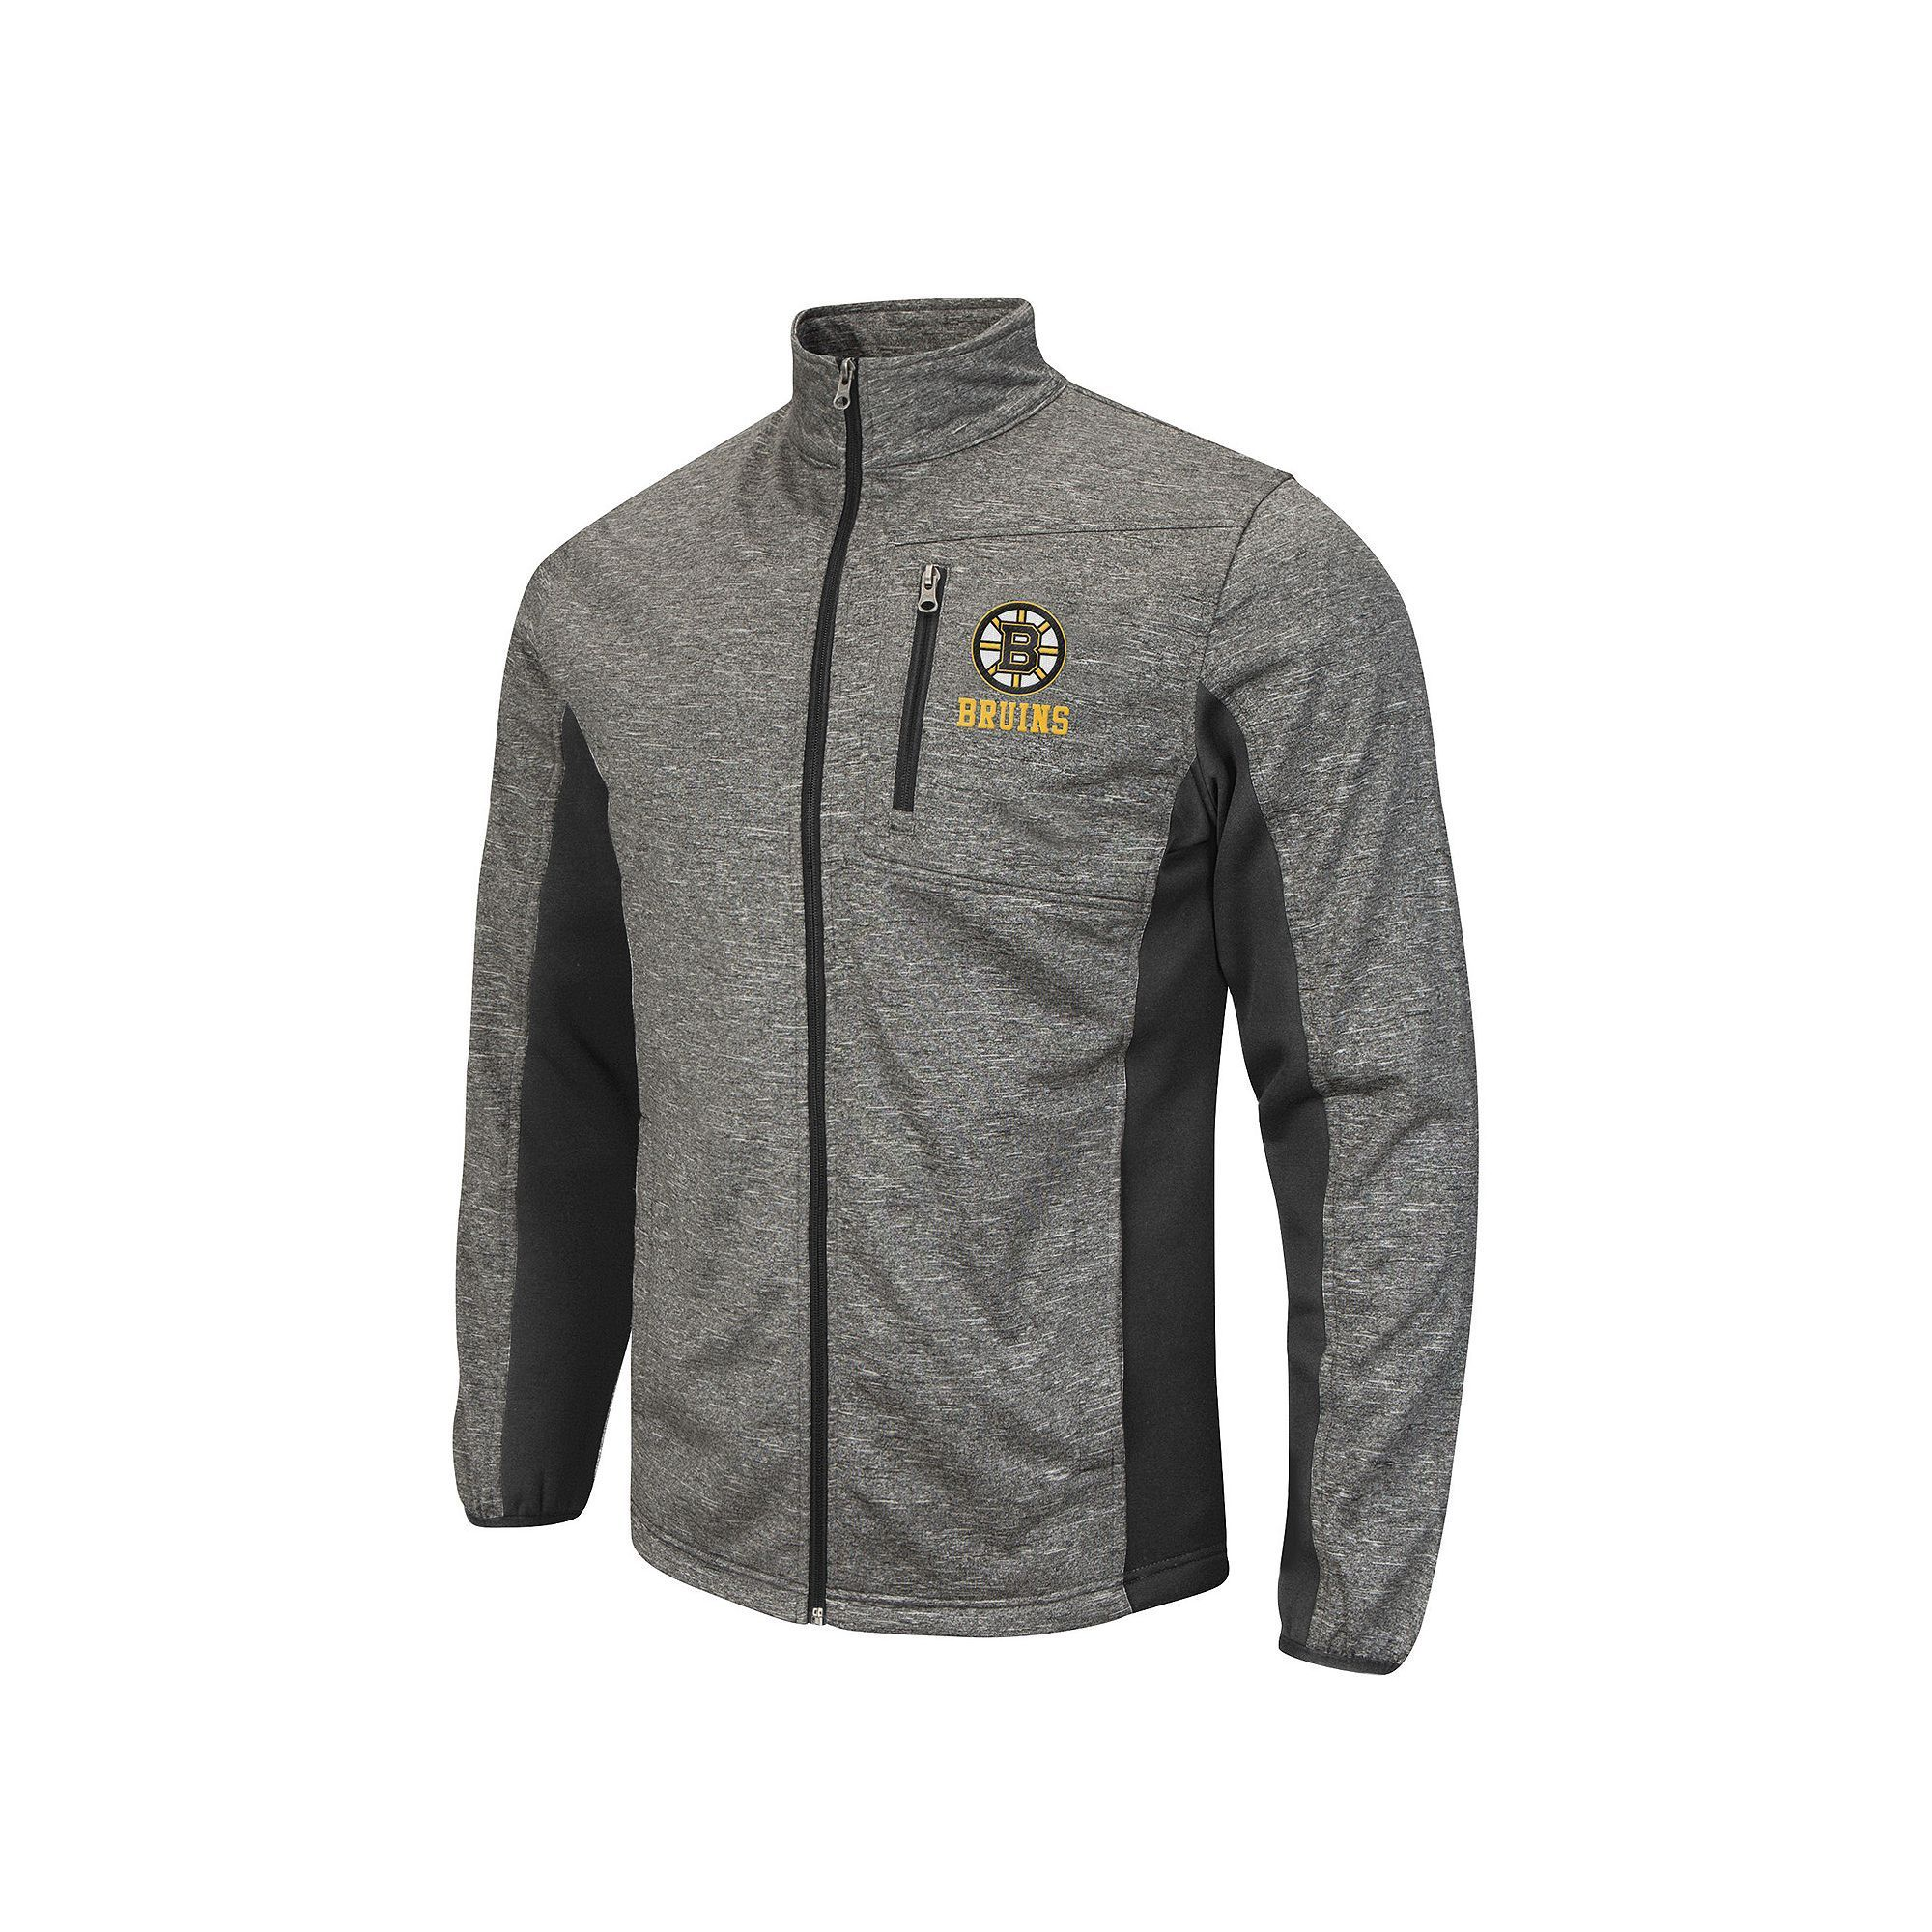 Men's Boston Bruins Space-Dye Full-Zip Fleece Jacket, Size: Small, Grey